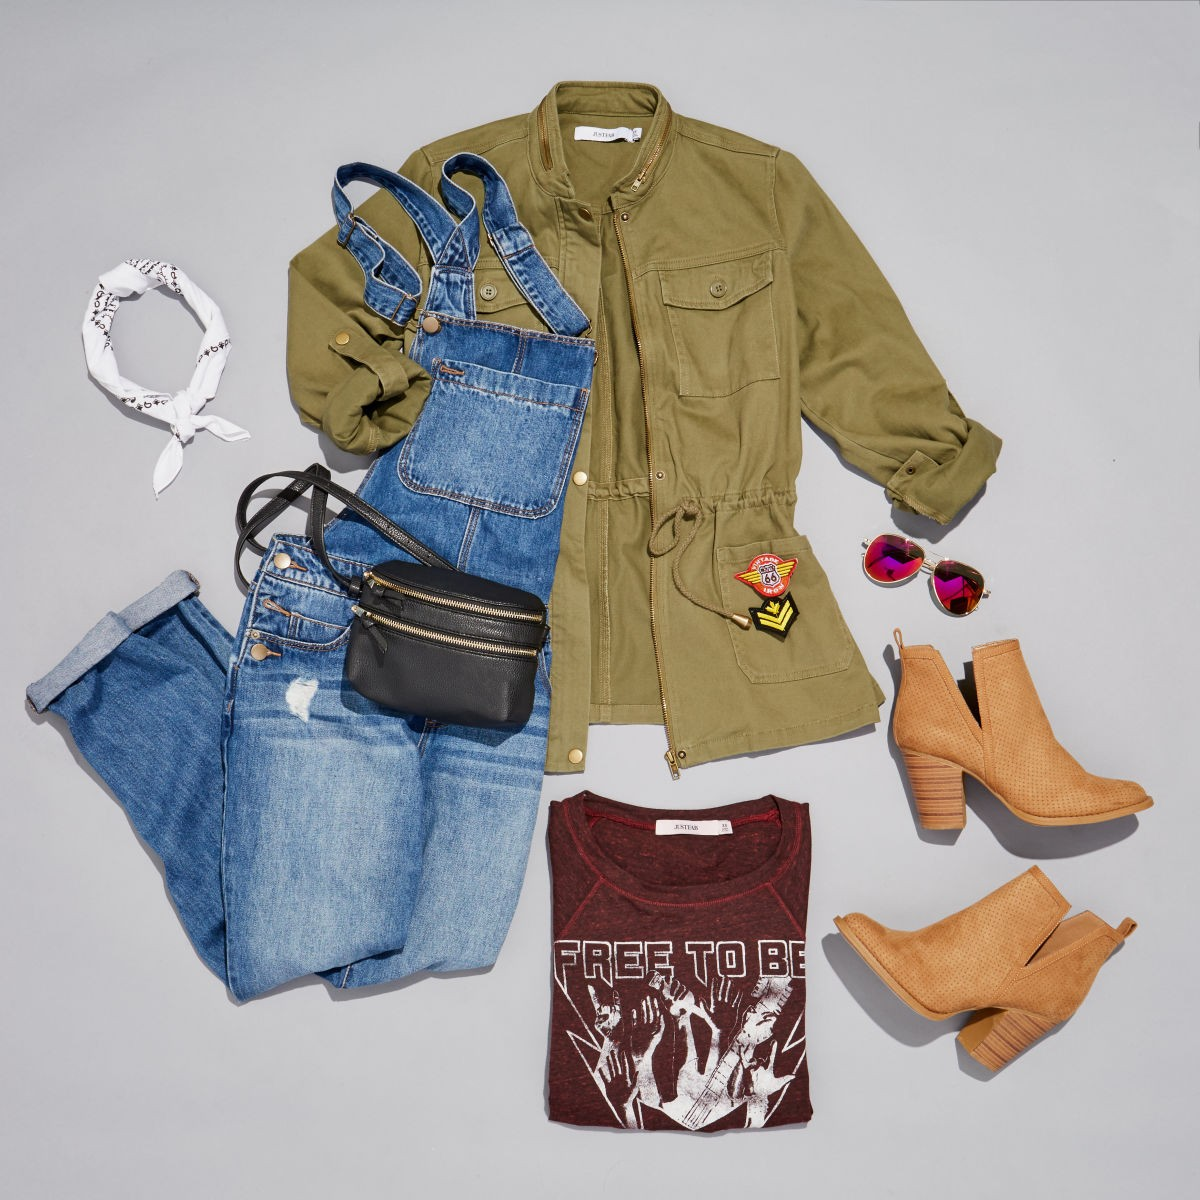 1r170622_je_ps_stilllife_outfits_7800_rt